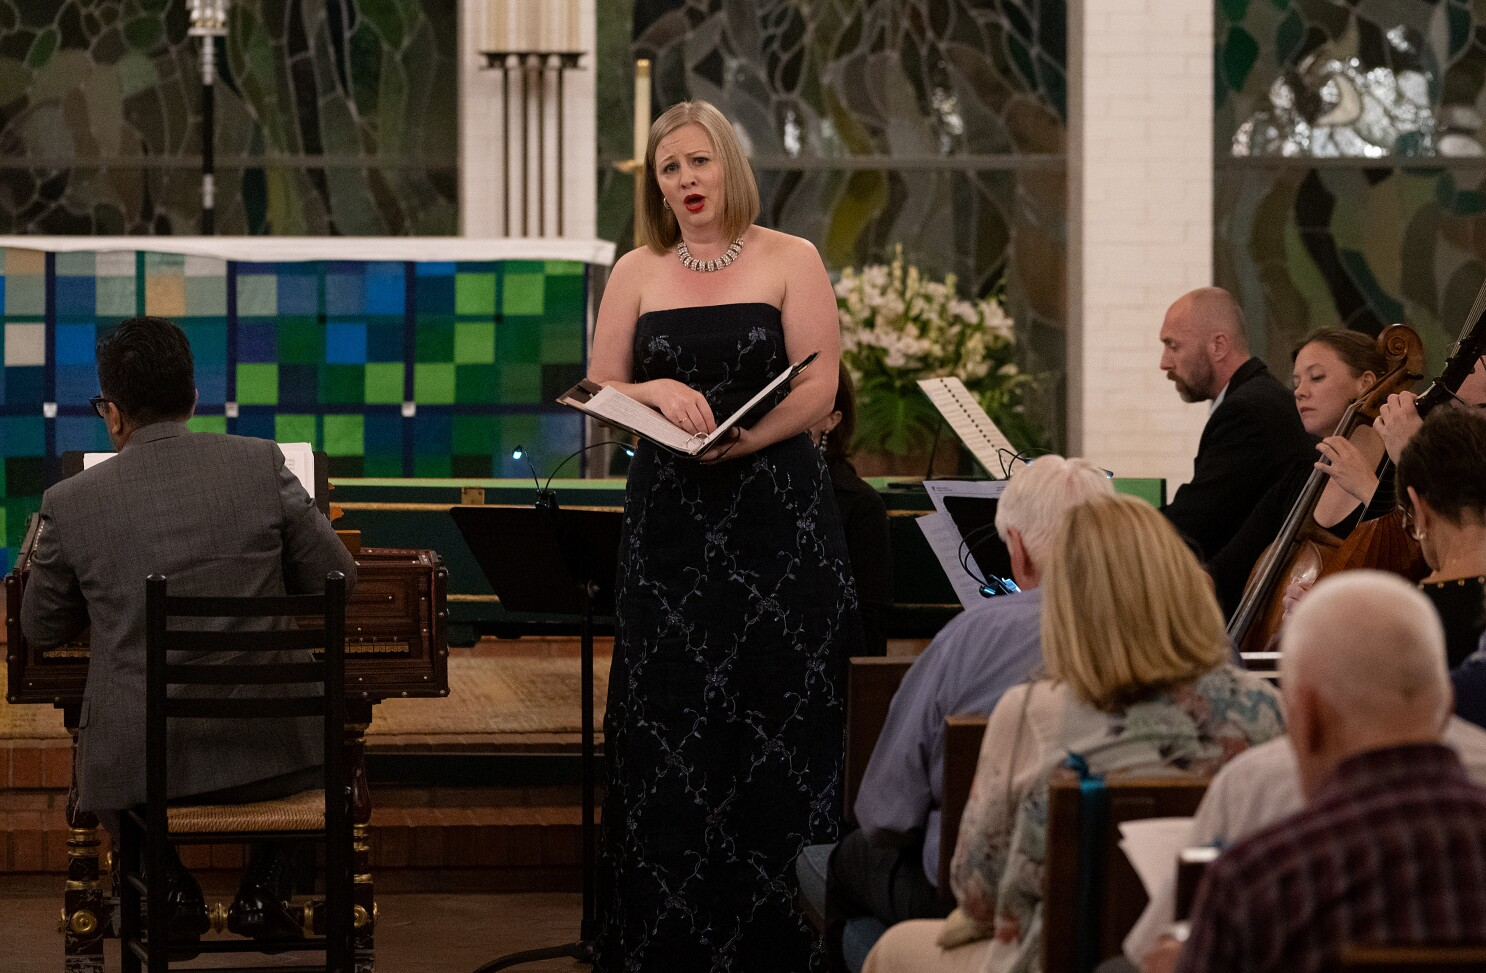 Review: Bach Collegium San Diego opens season with a lovely Bach cantata